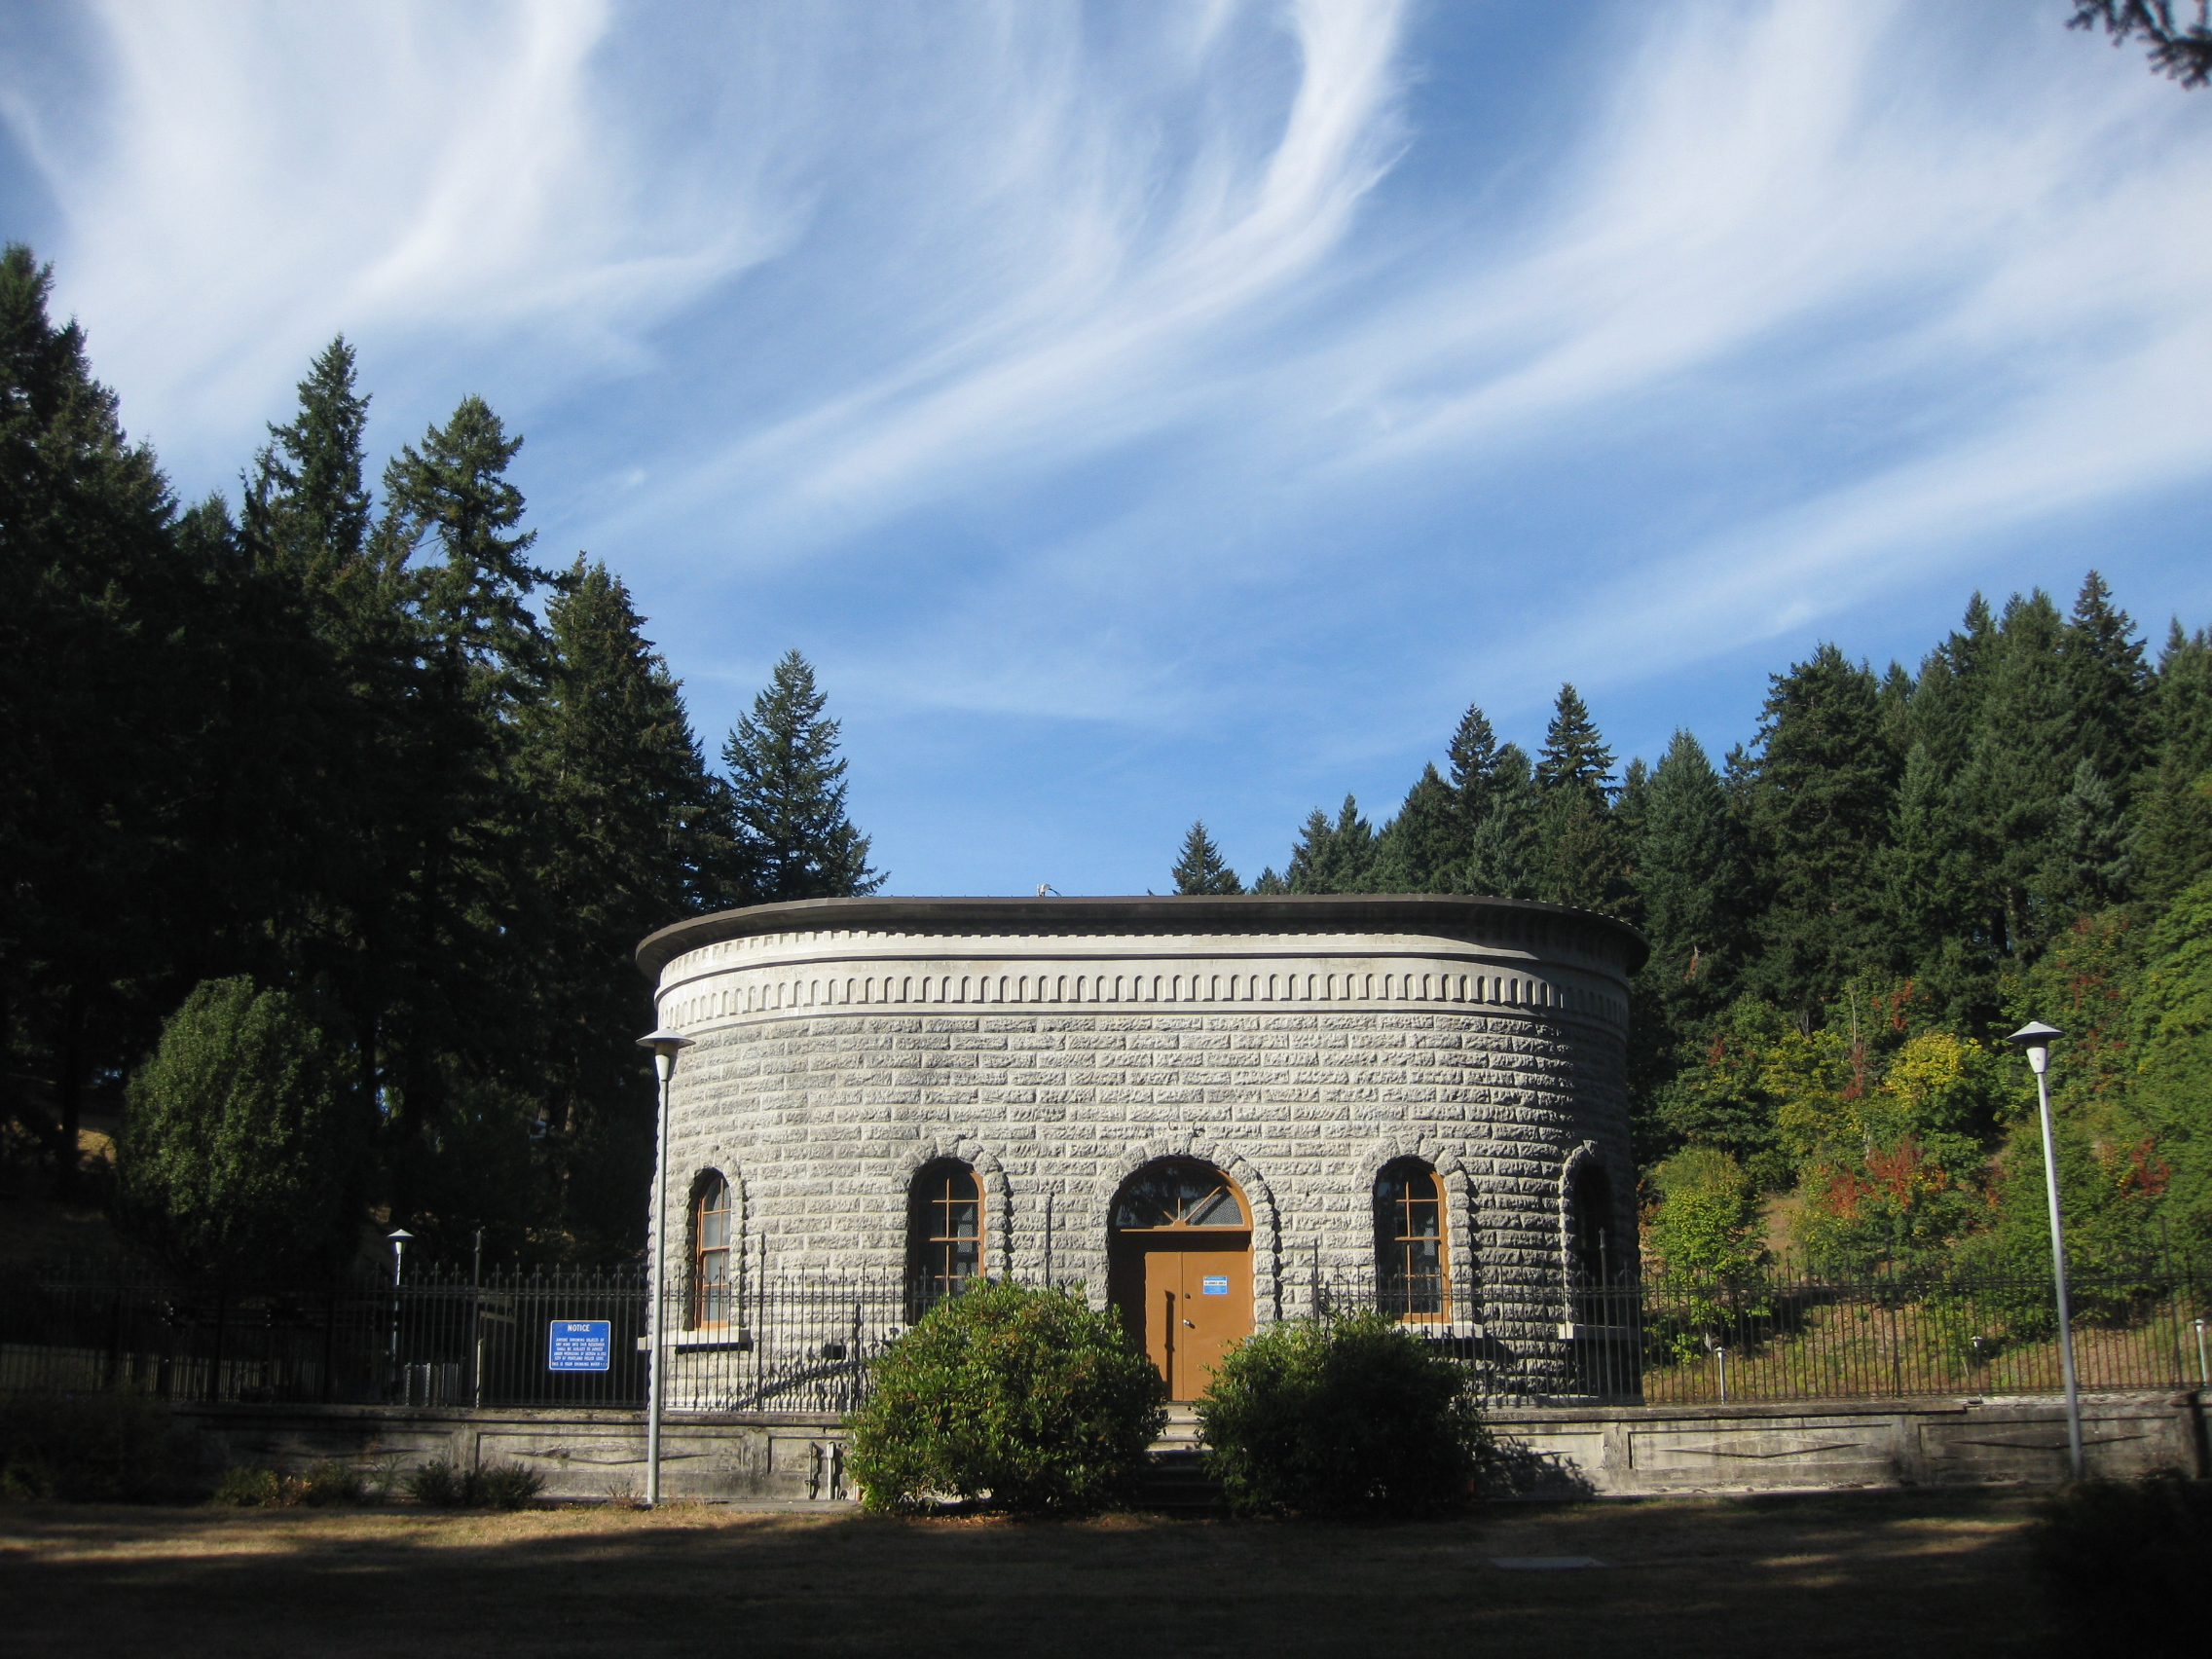 The gatehouse at reservoir #1.